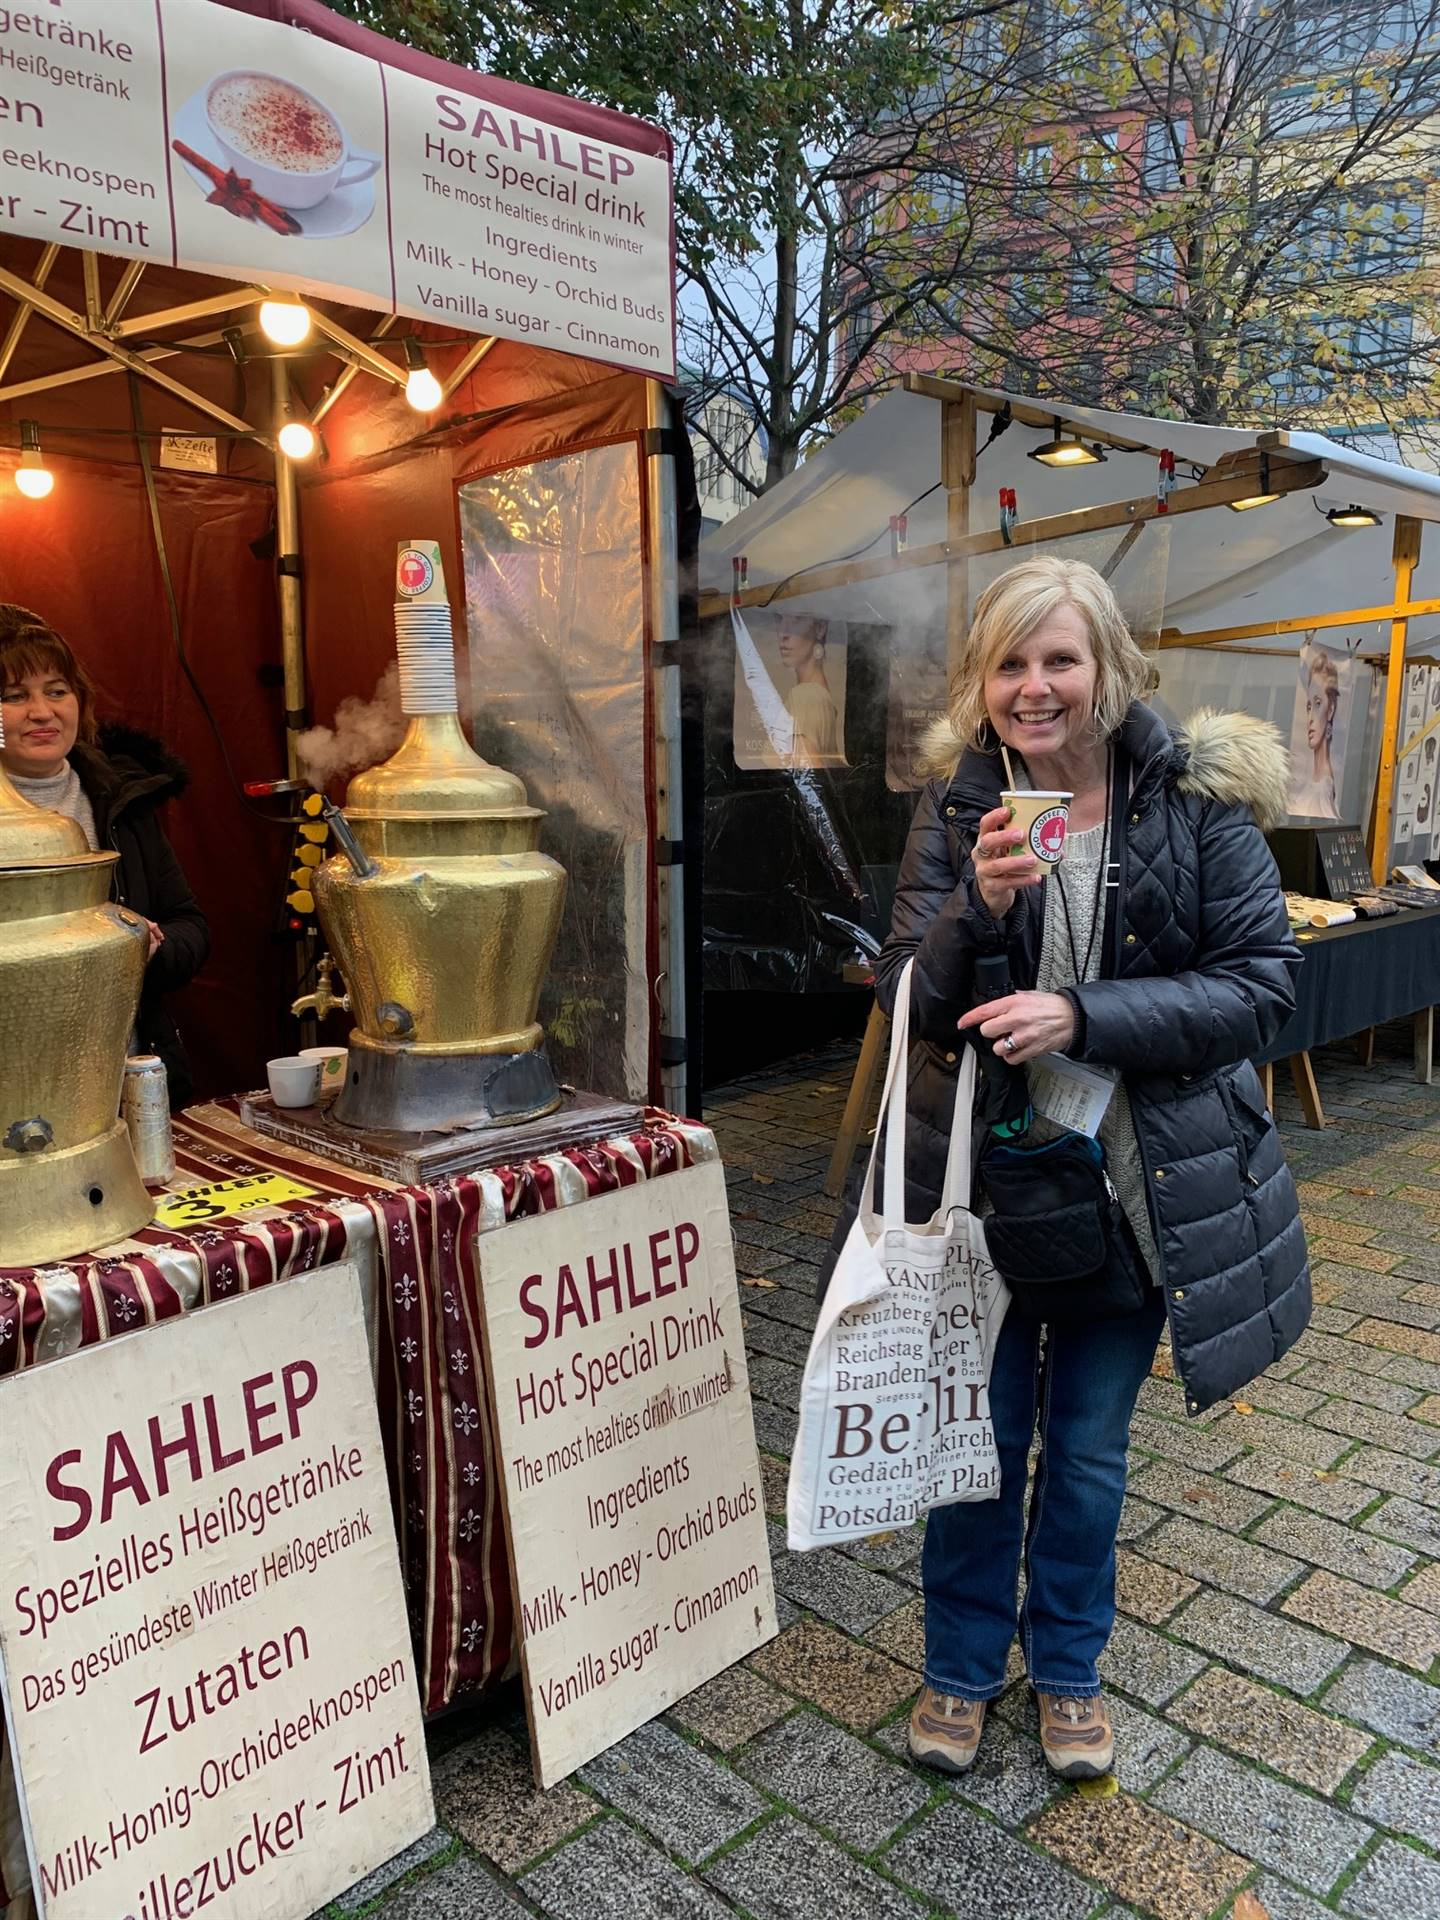 Mrs. Keaton in Berlin enjoying Sahlep (milk and honey)